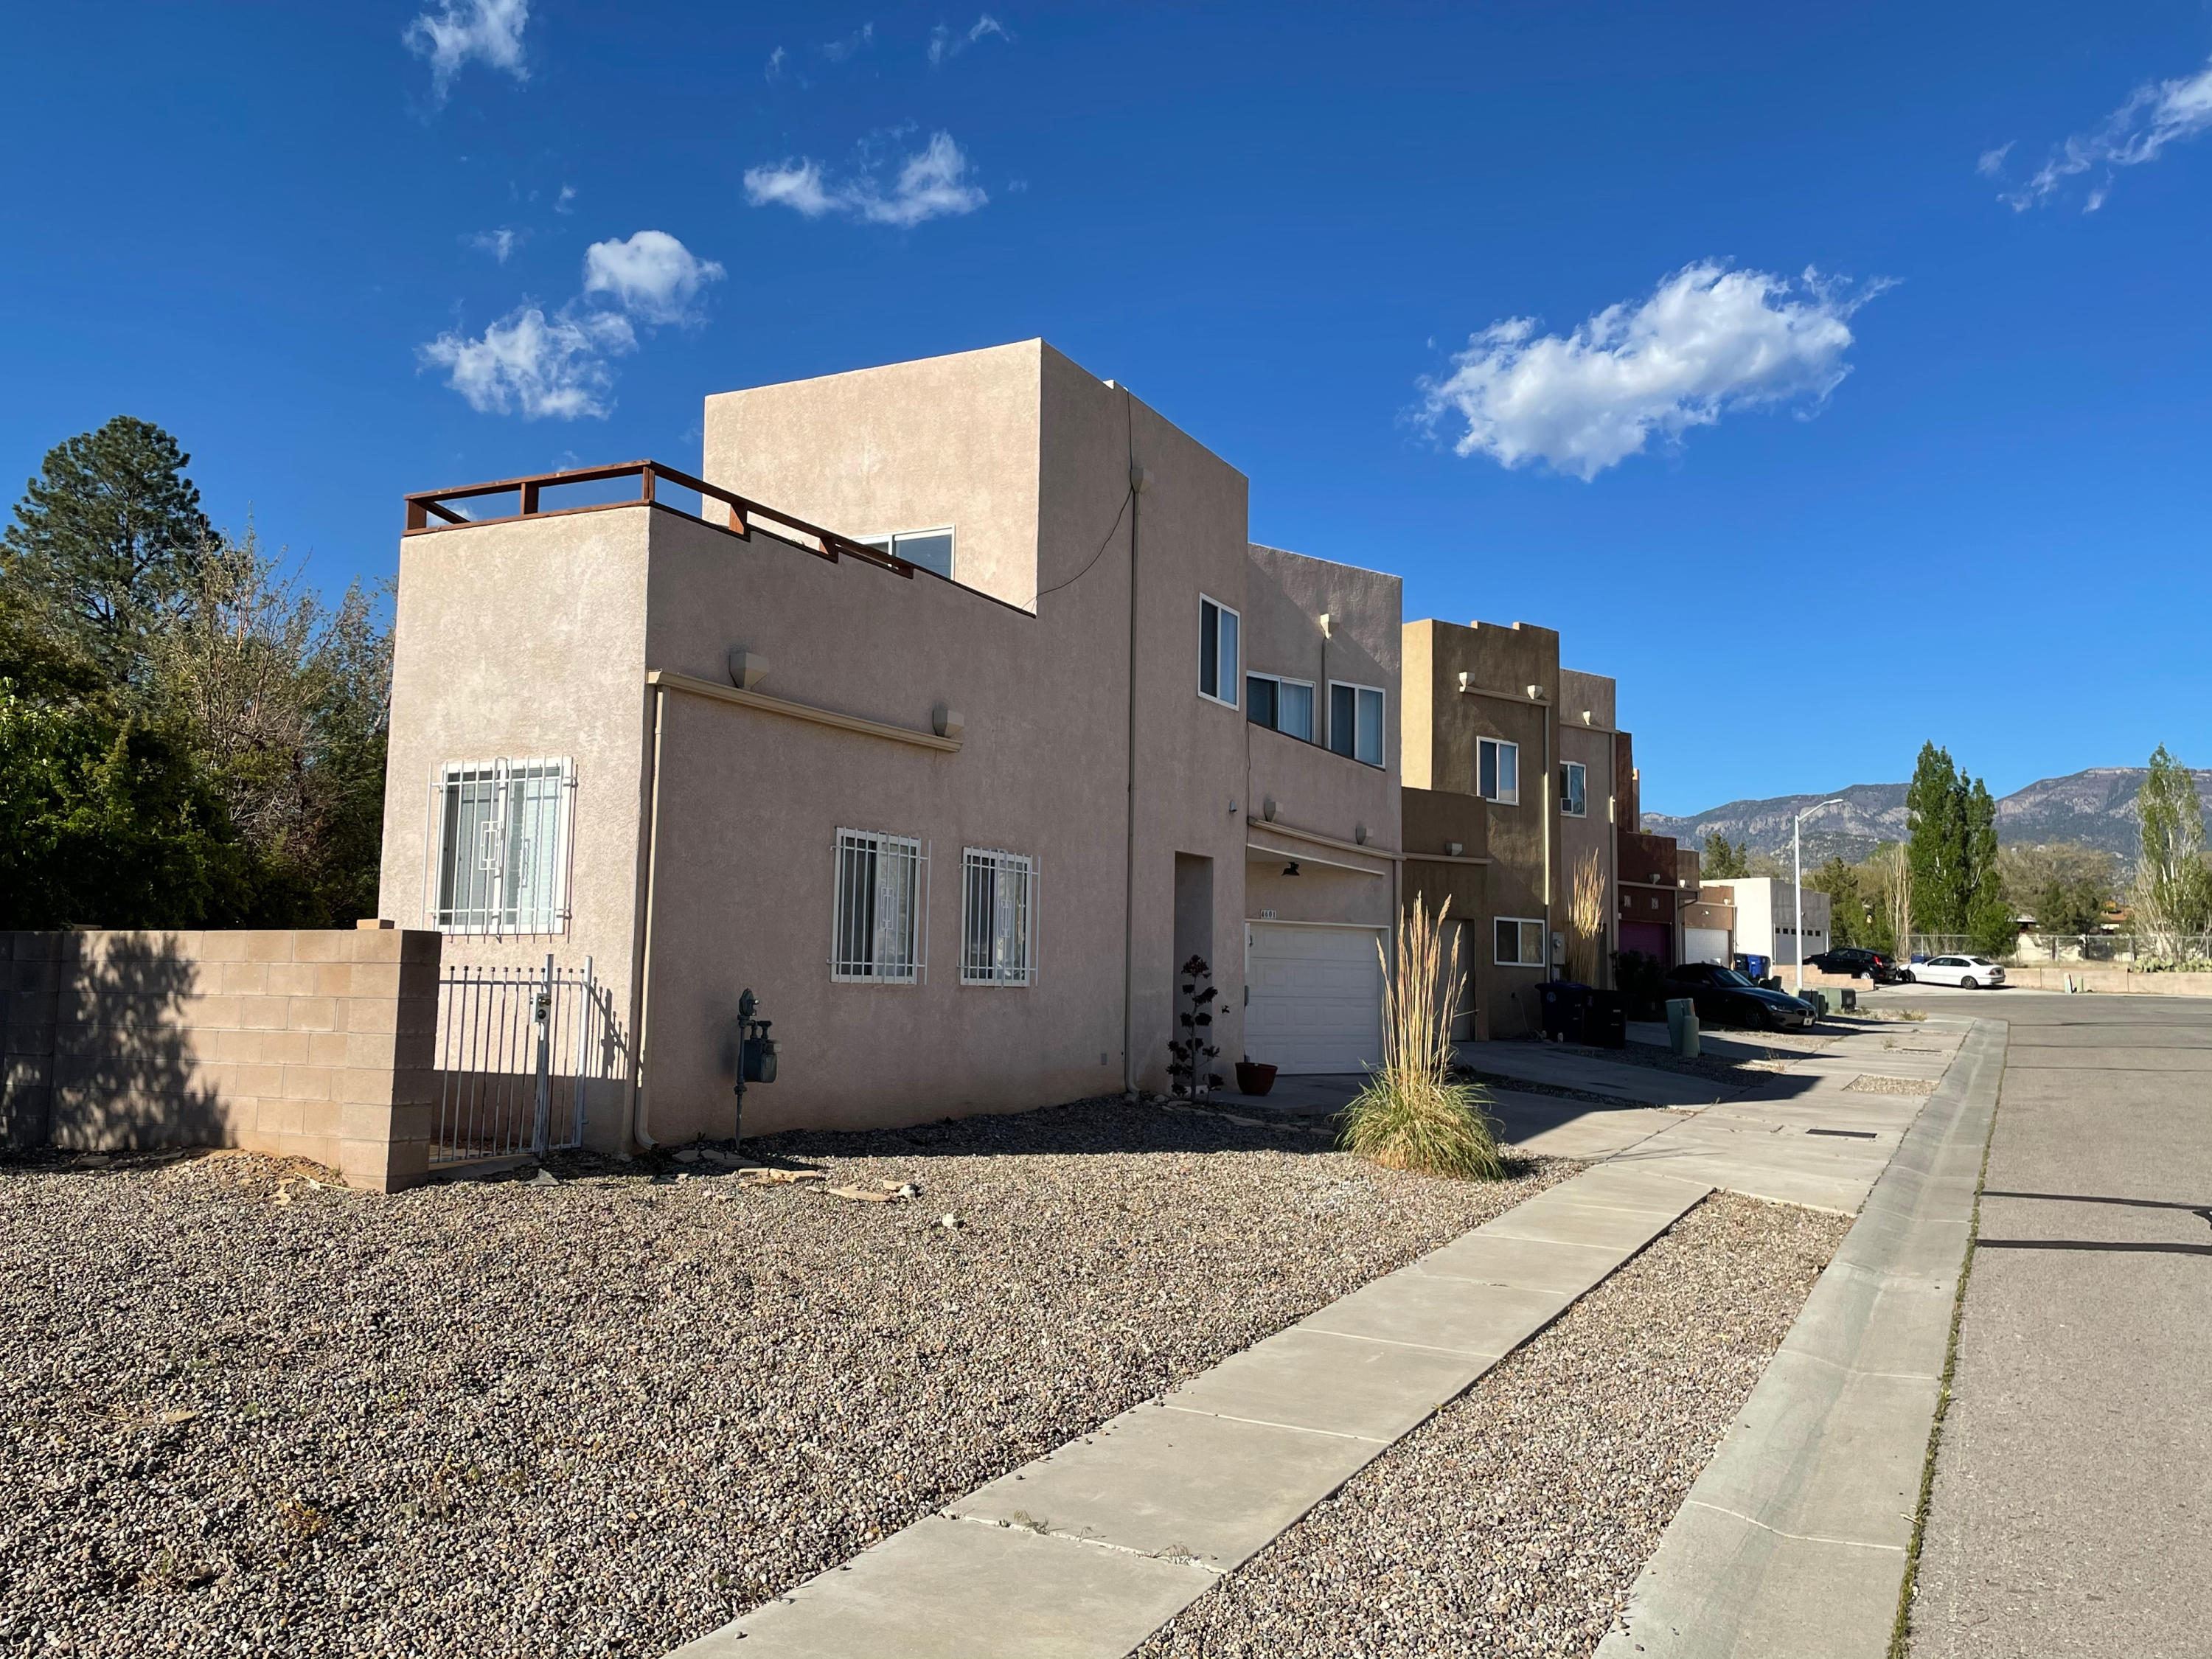 Nice townhome on a large lot featuring two Master Suites, cozy kitchen and great room.  Large balcony off one master suite with great city and mountain views, second master has a south facing balcony.  Close to mountain hiking and bike trails.